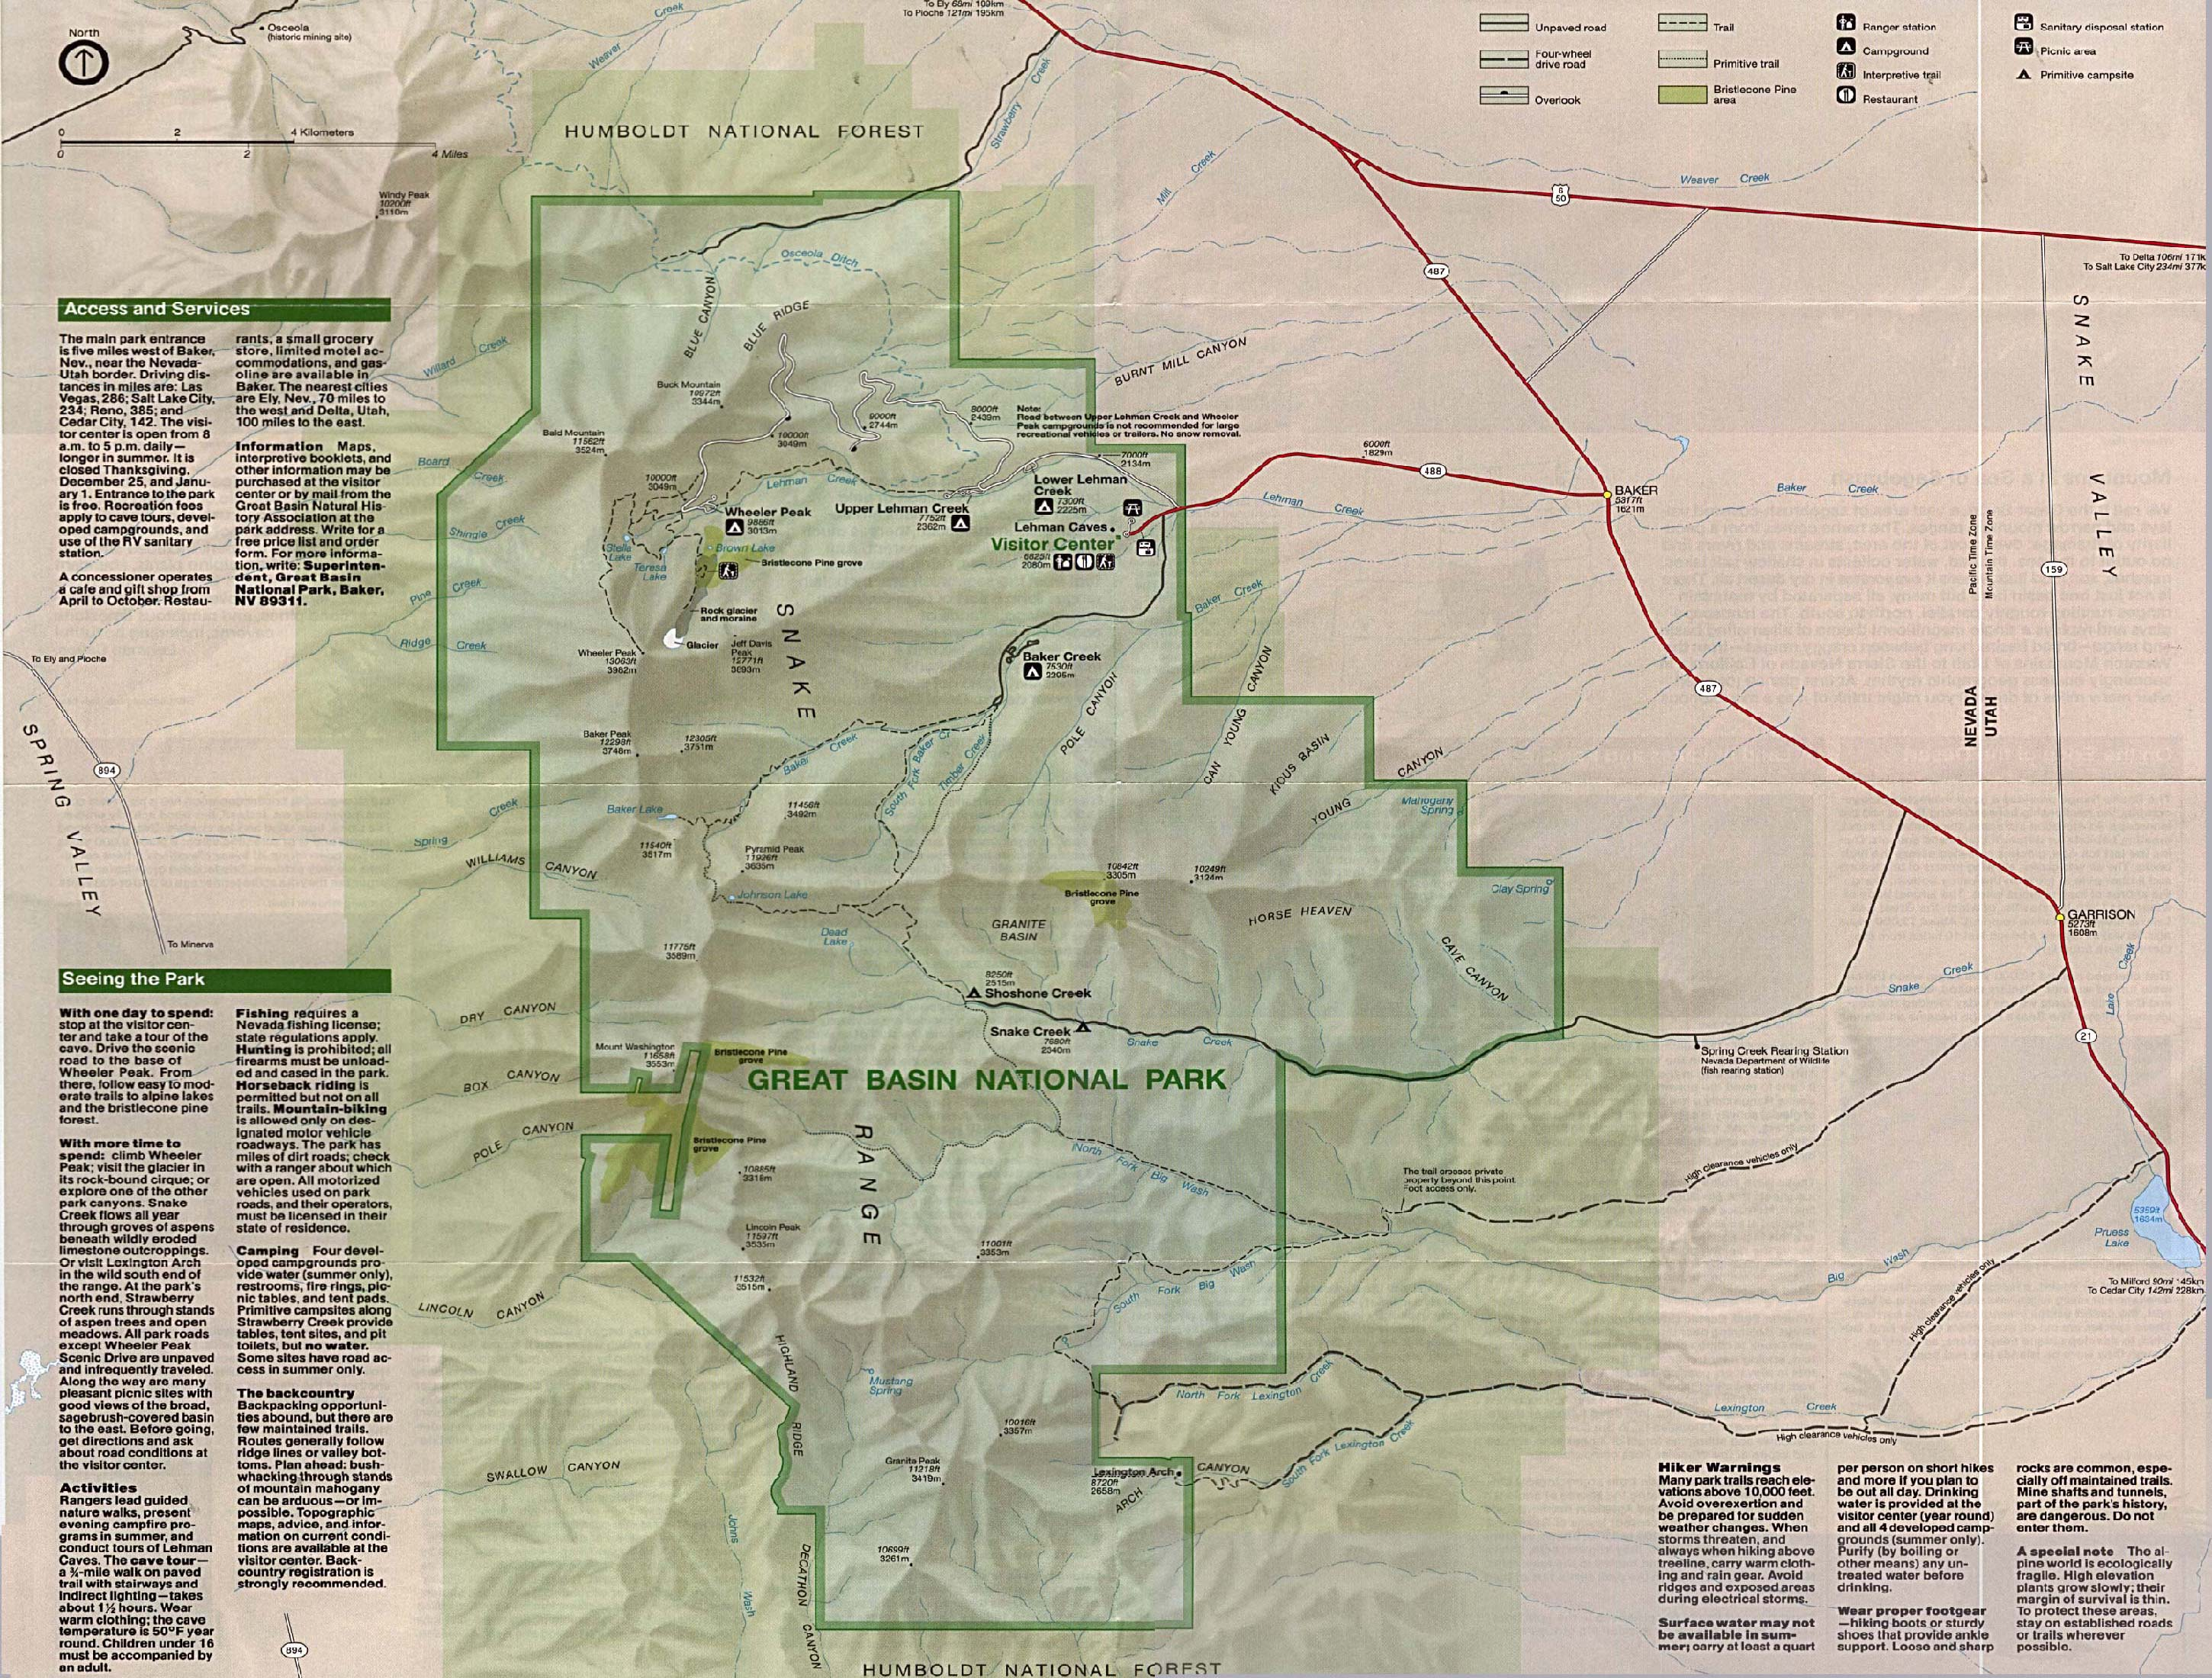 Great Basin National Park Shaded Relief Map, Nevada, United States